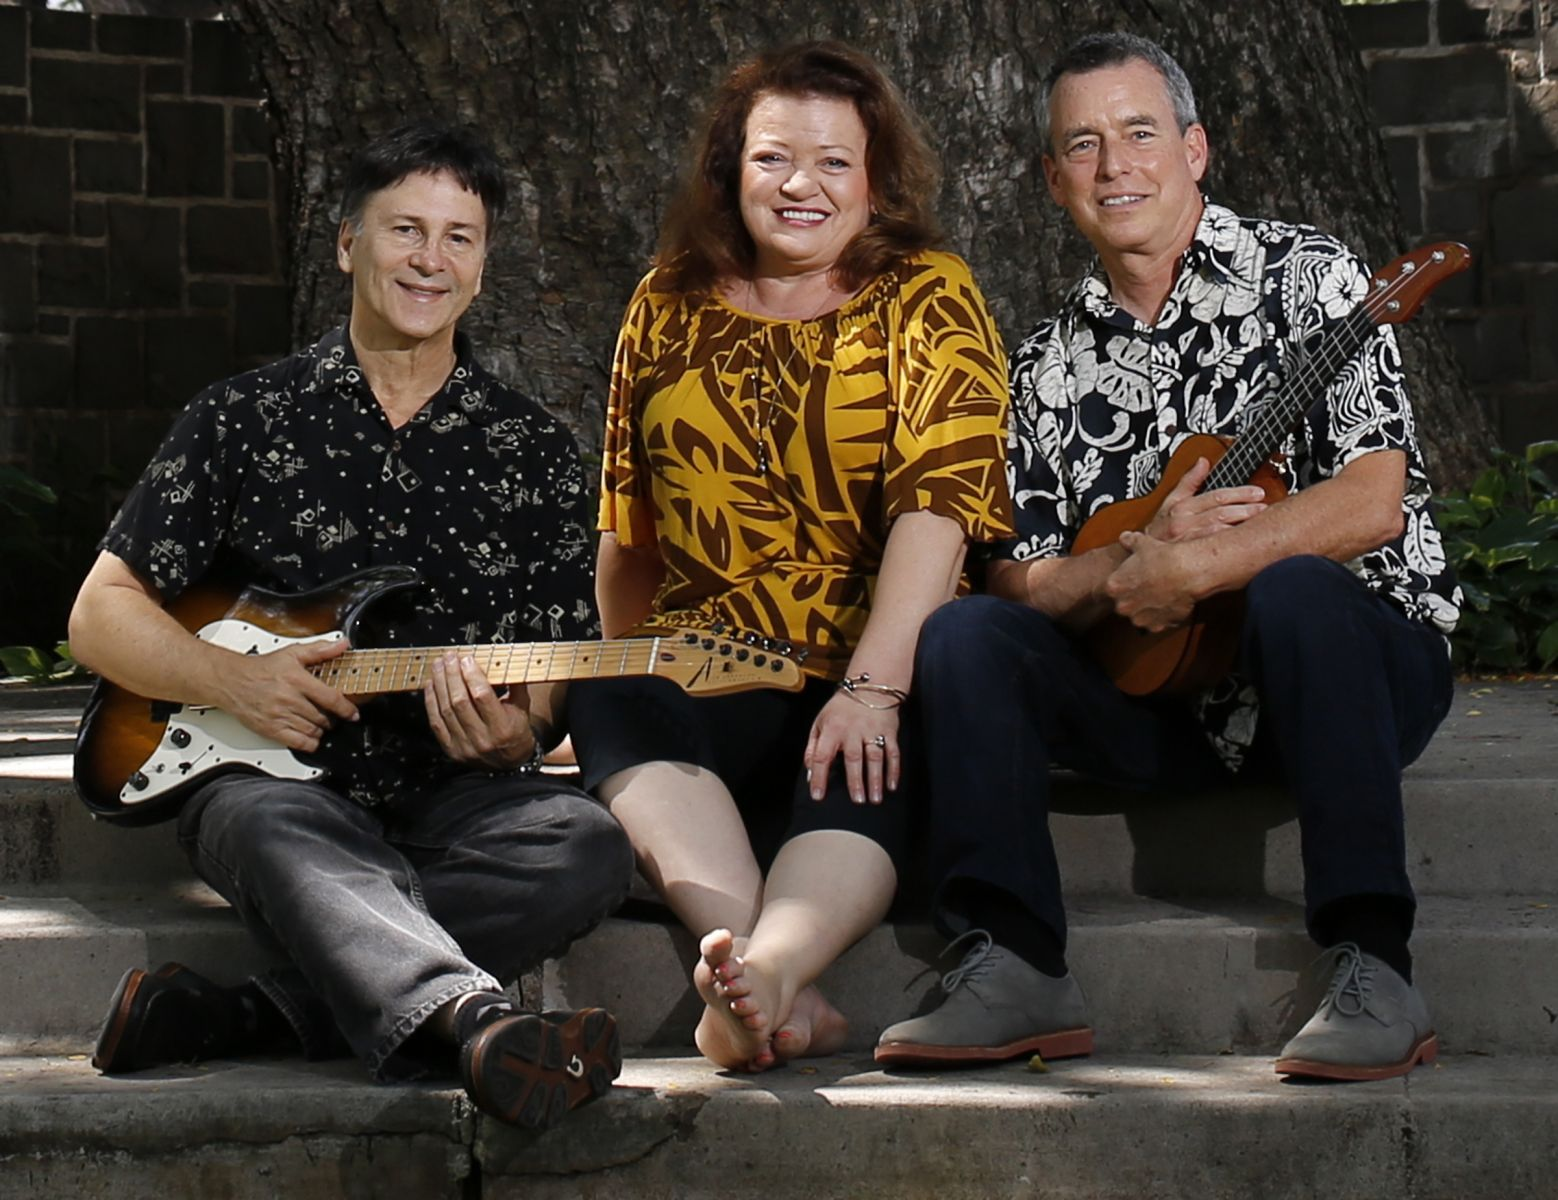 MACC Streaming Free Concert Sept. 18 Featuring Hawaiian Style Band